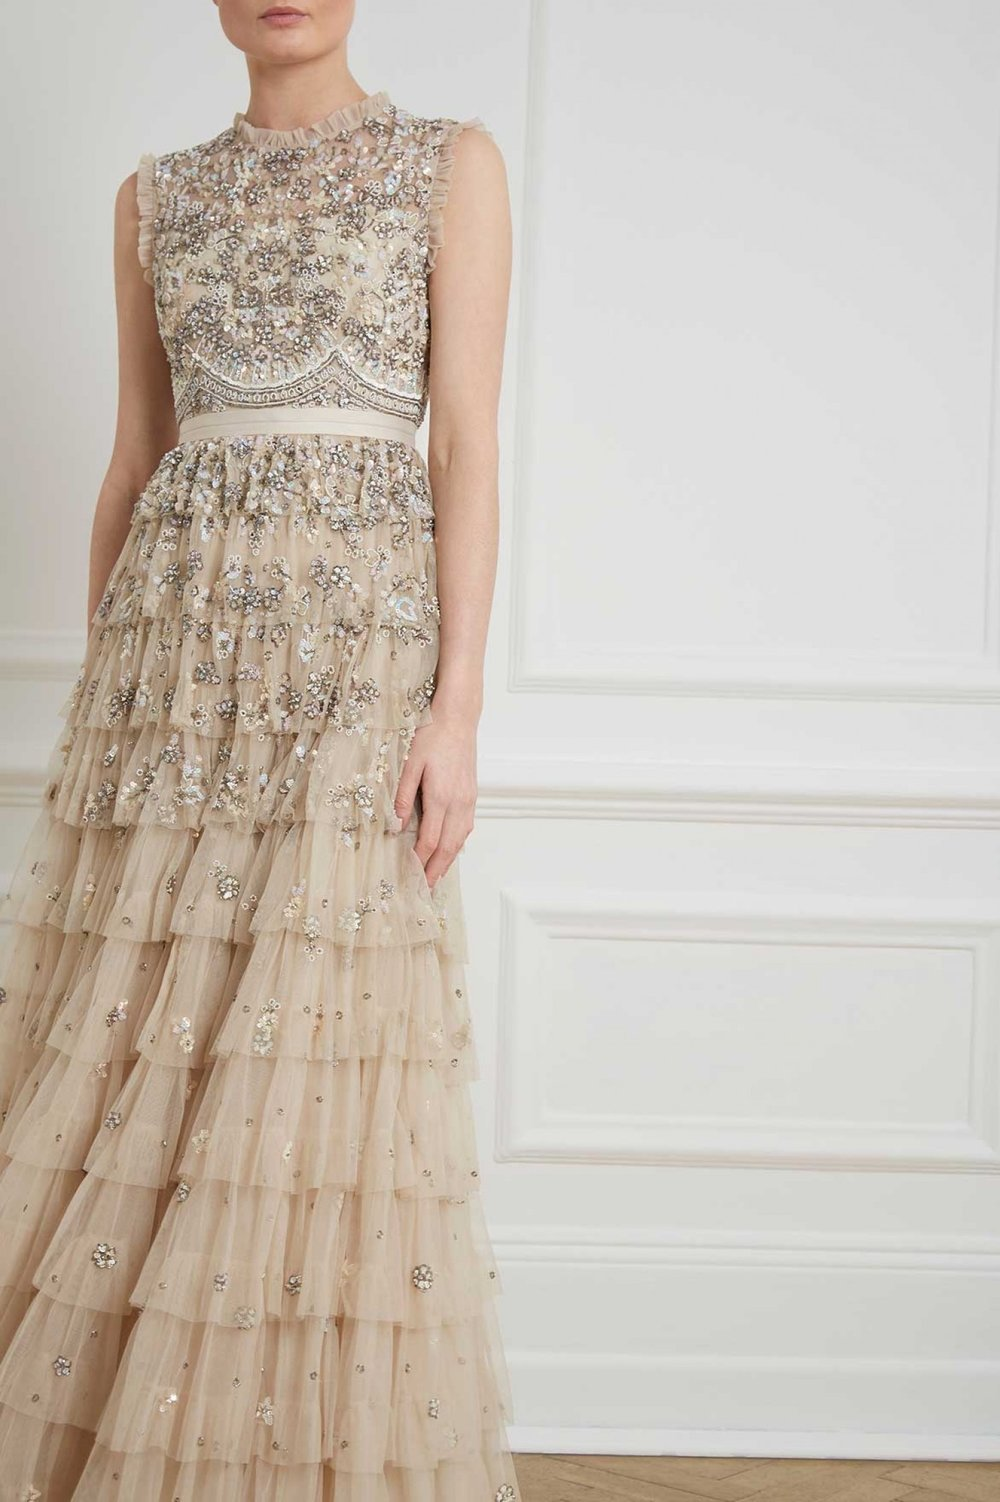 pearlescent_gown_-_champagne_-_needle_thread_-_2_1.jpg